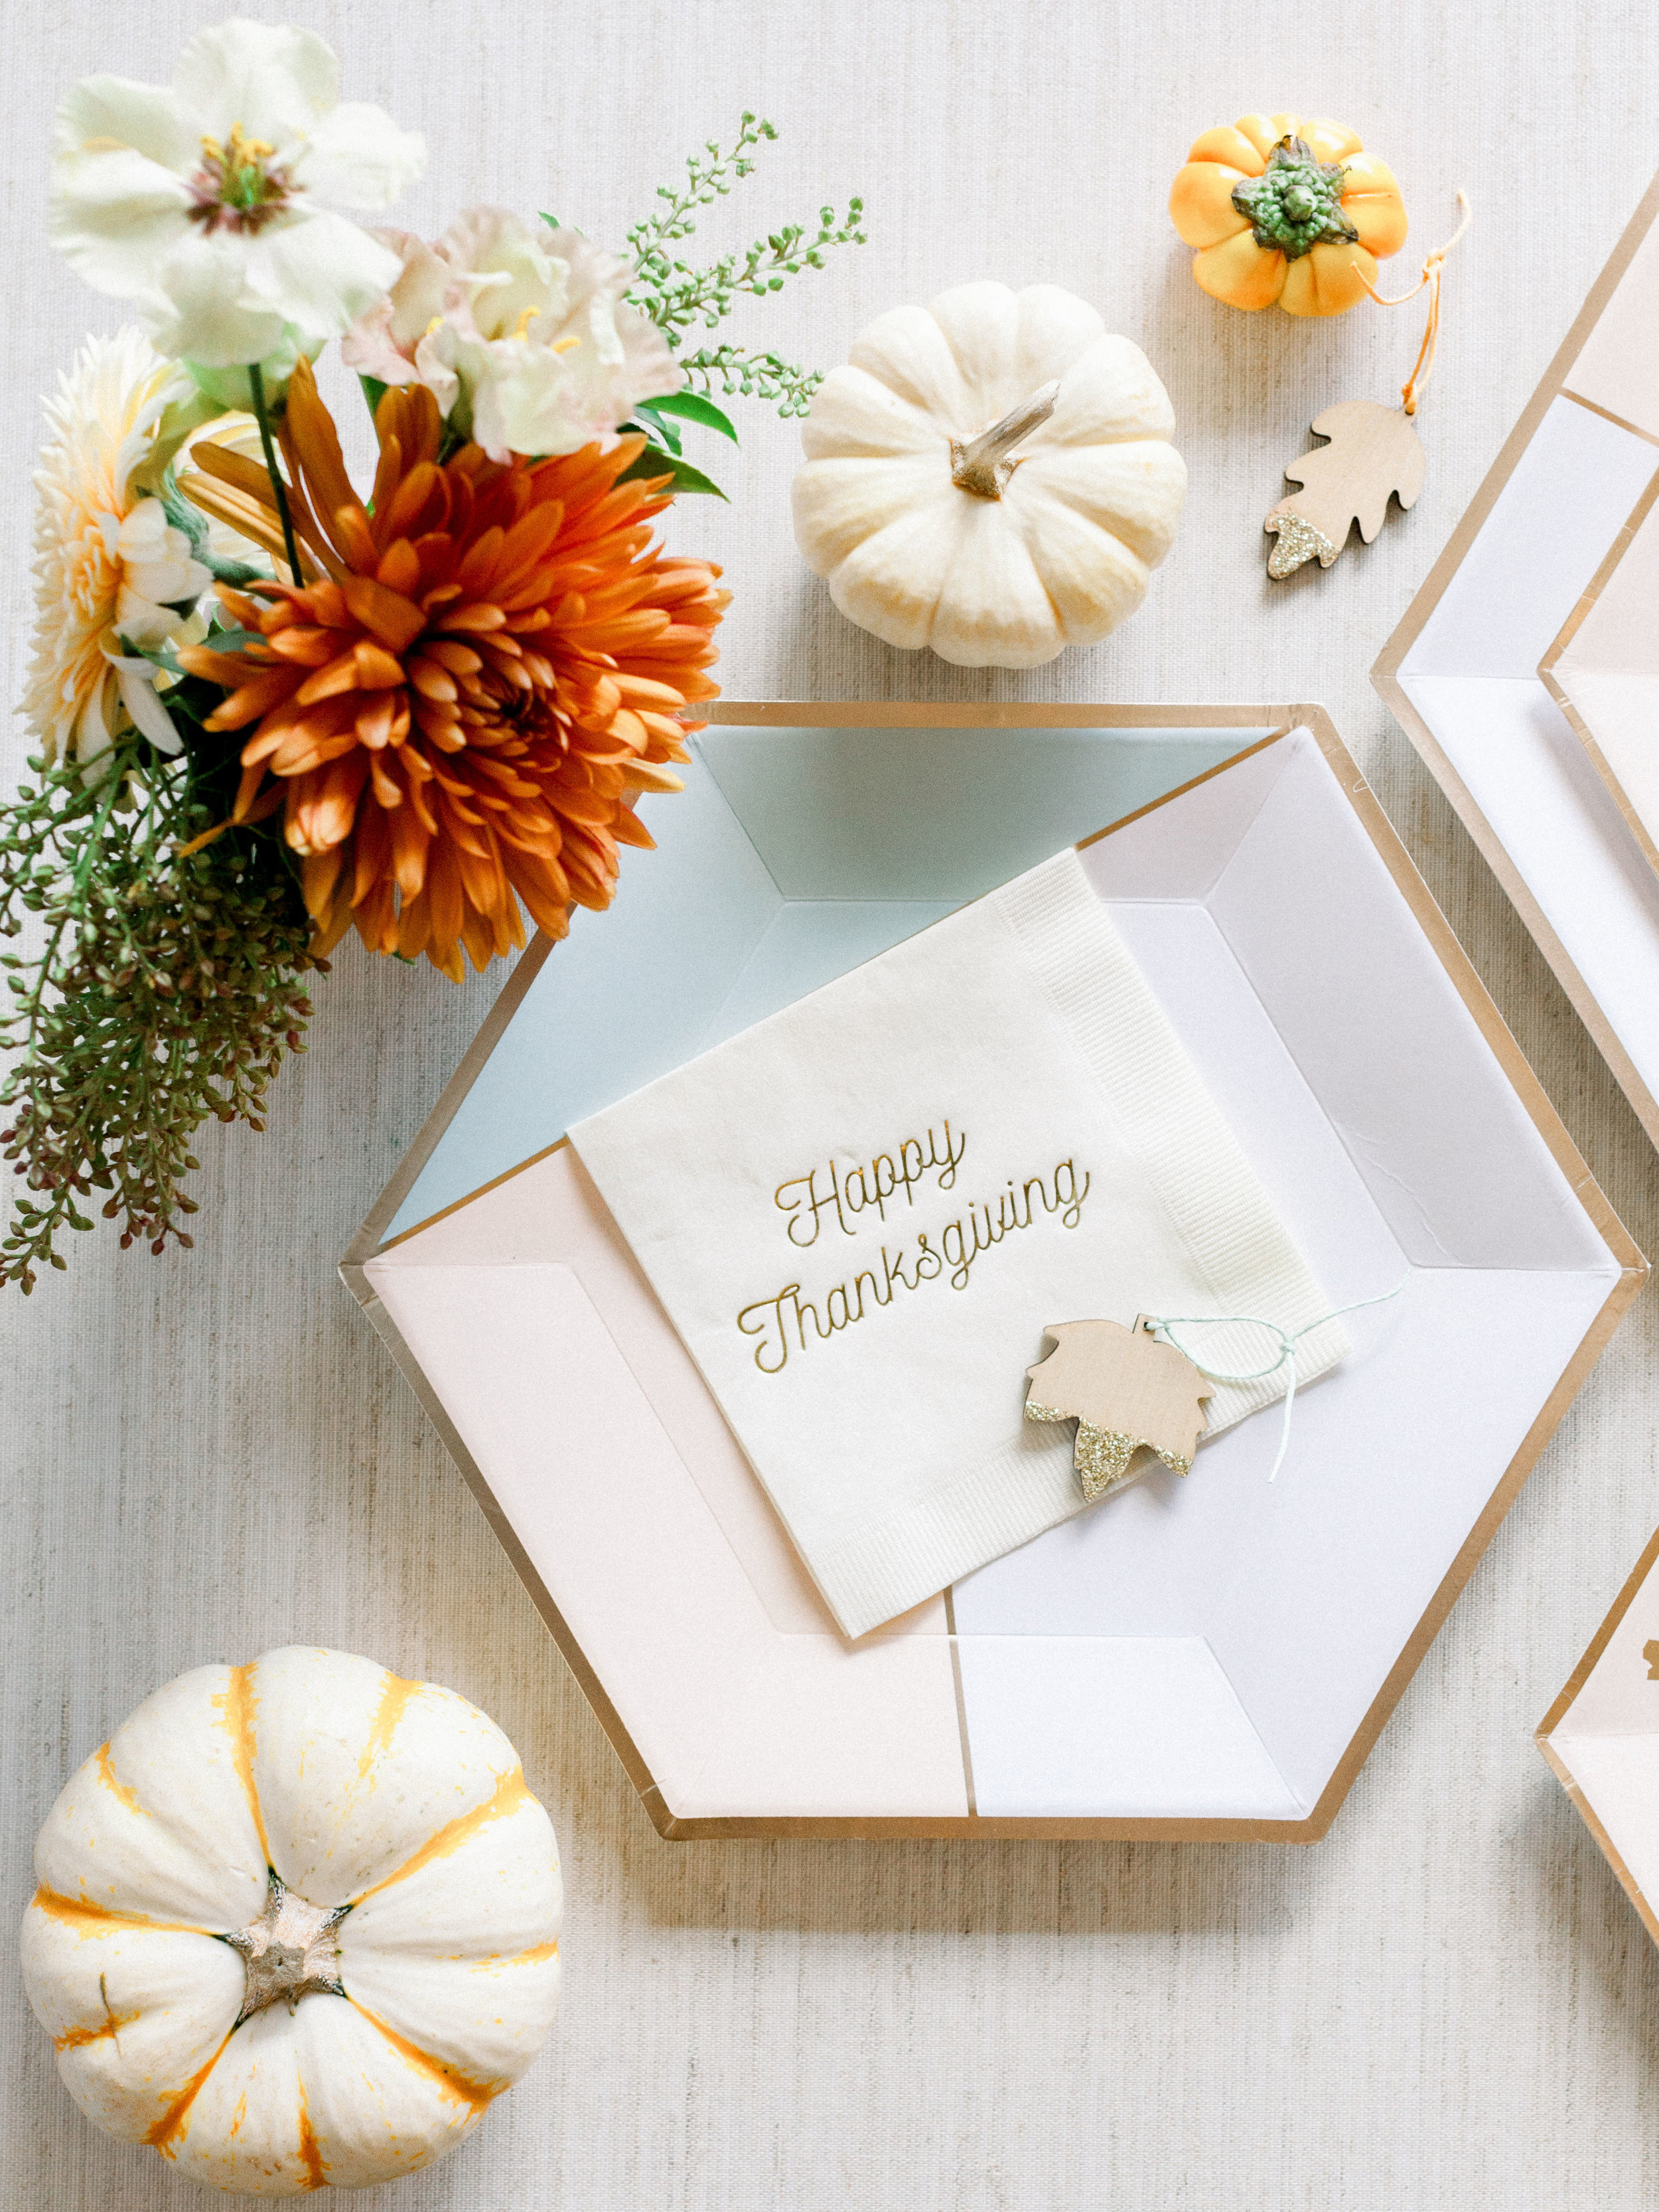 Oui Party Thanksgiving Place Setting 3.jpg